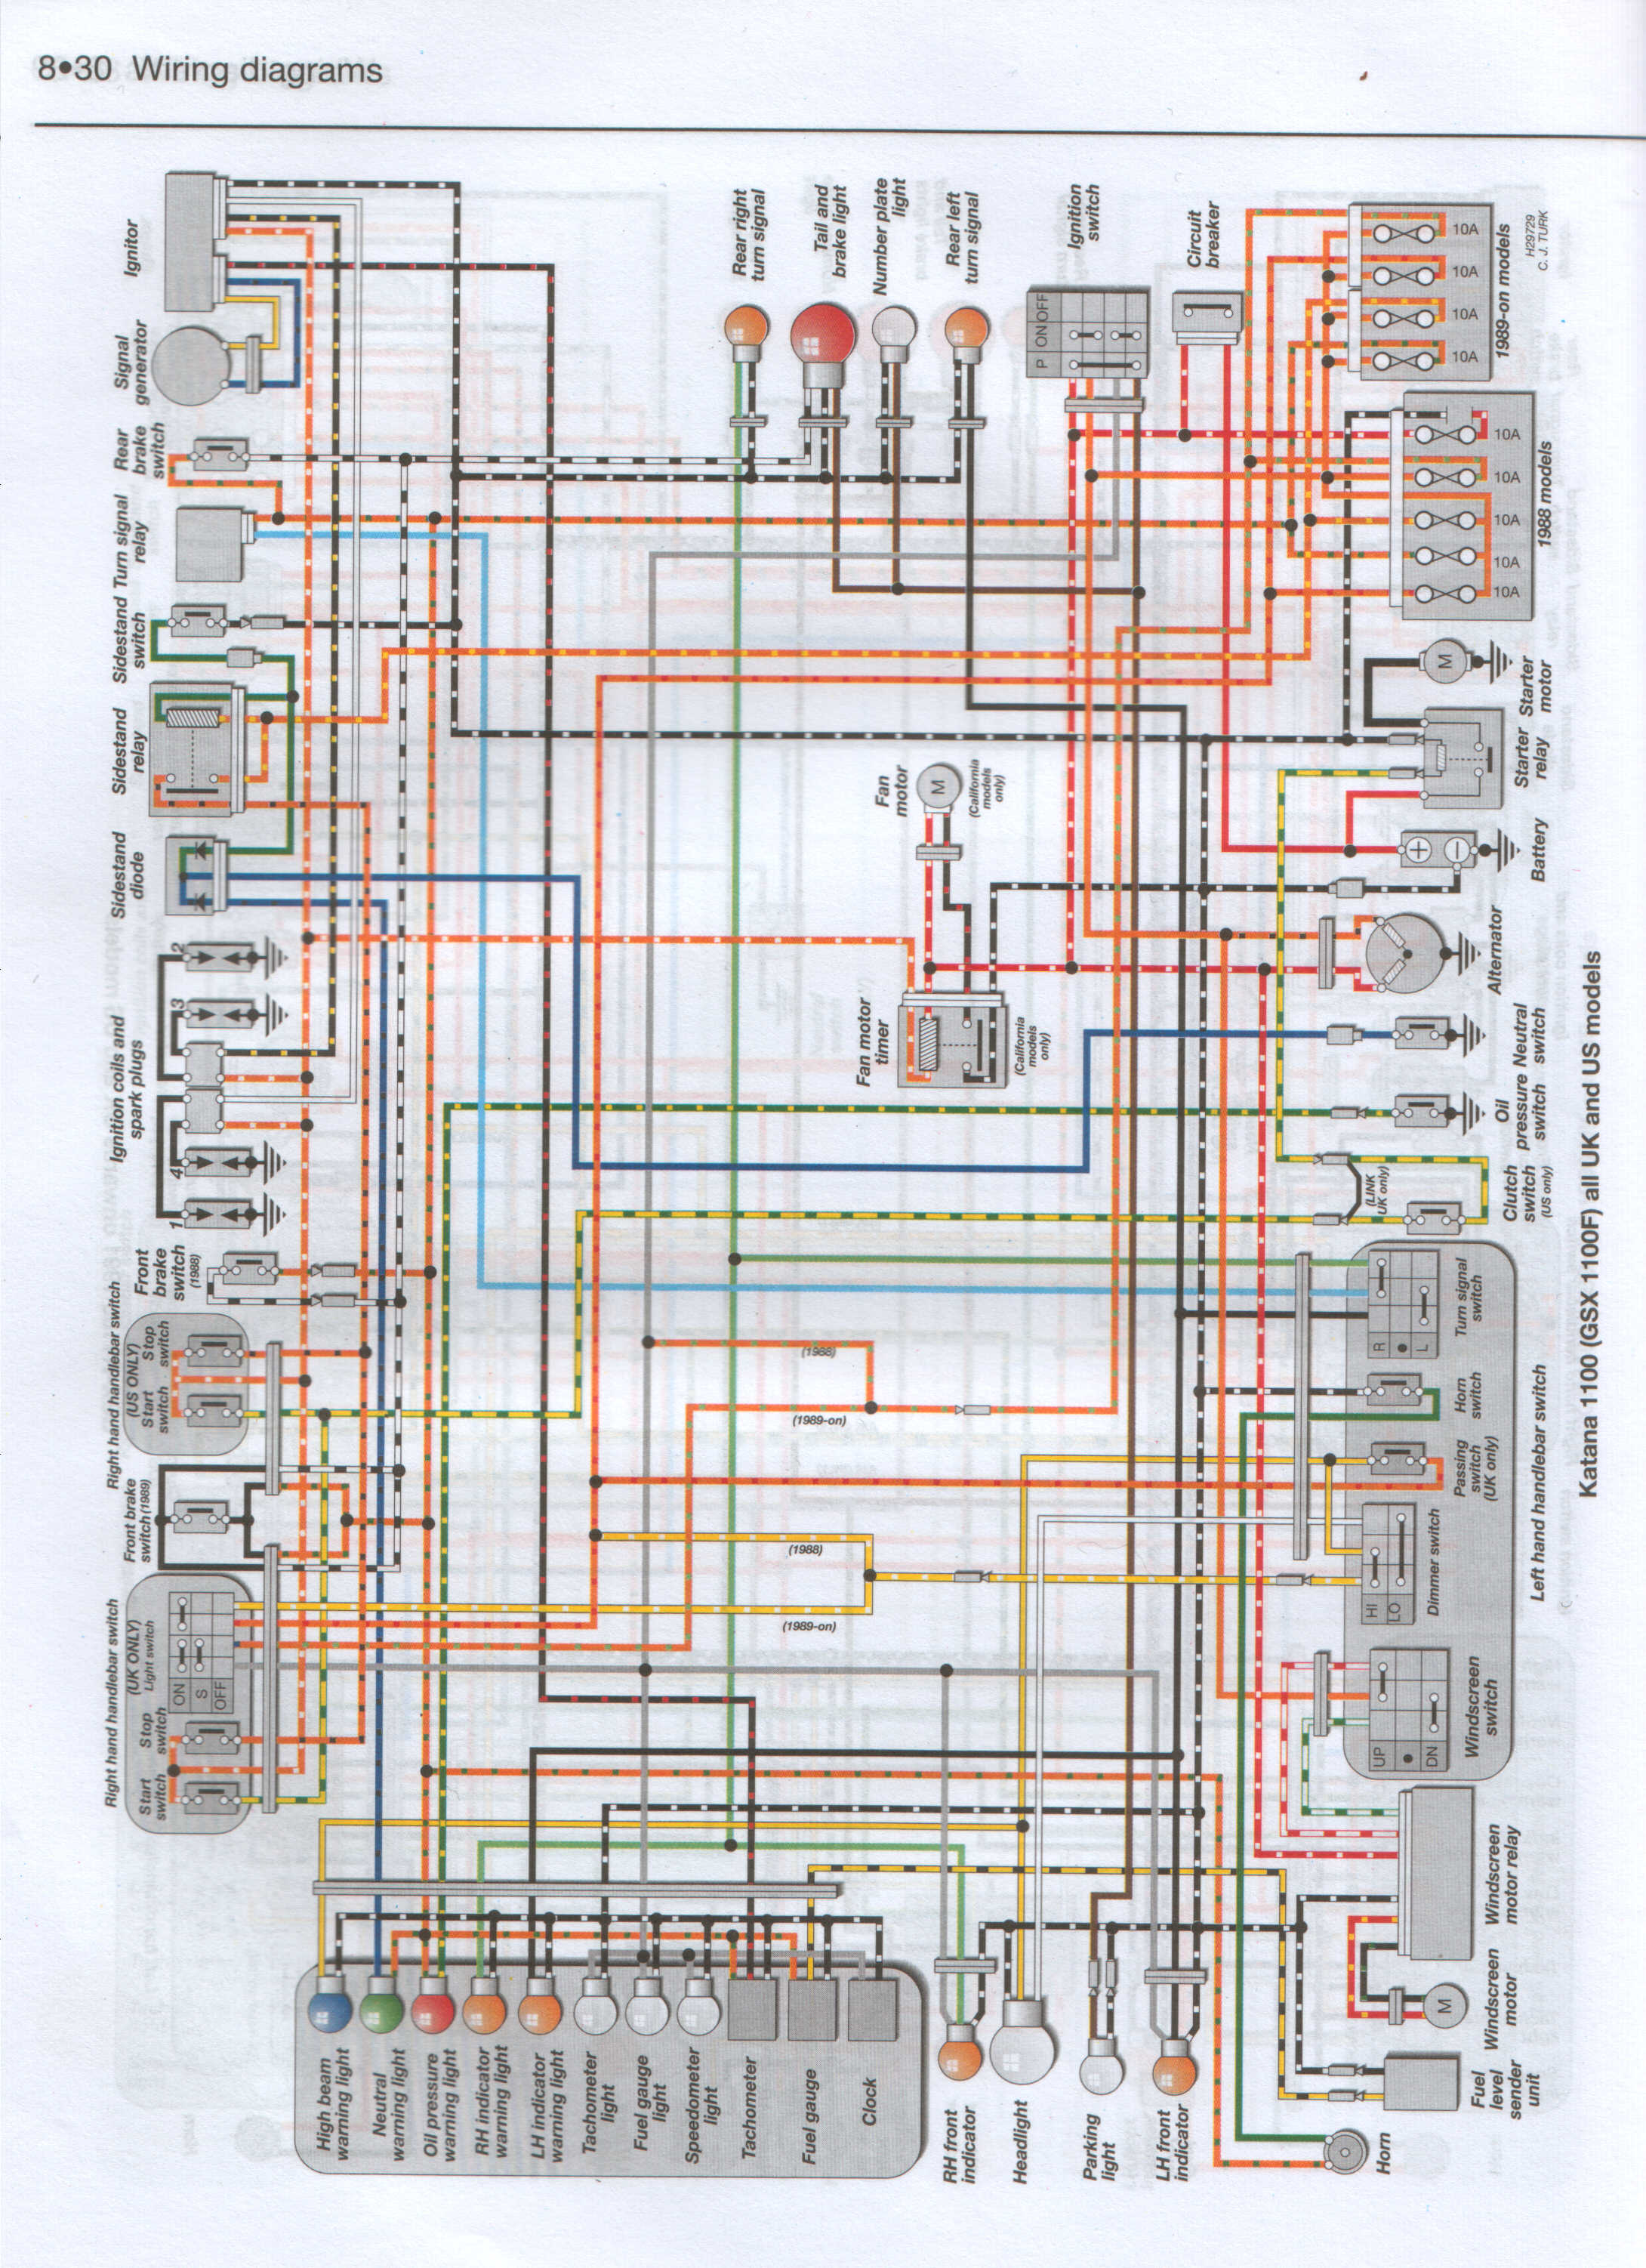 22_1275754339 gsxr 750 wiring diagram efcaviation com 1990 suzuki dr350 wiring diagram at bayanpartner.co